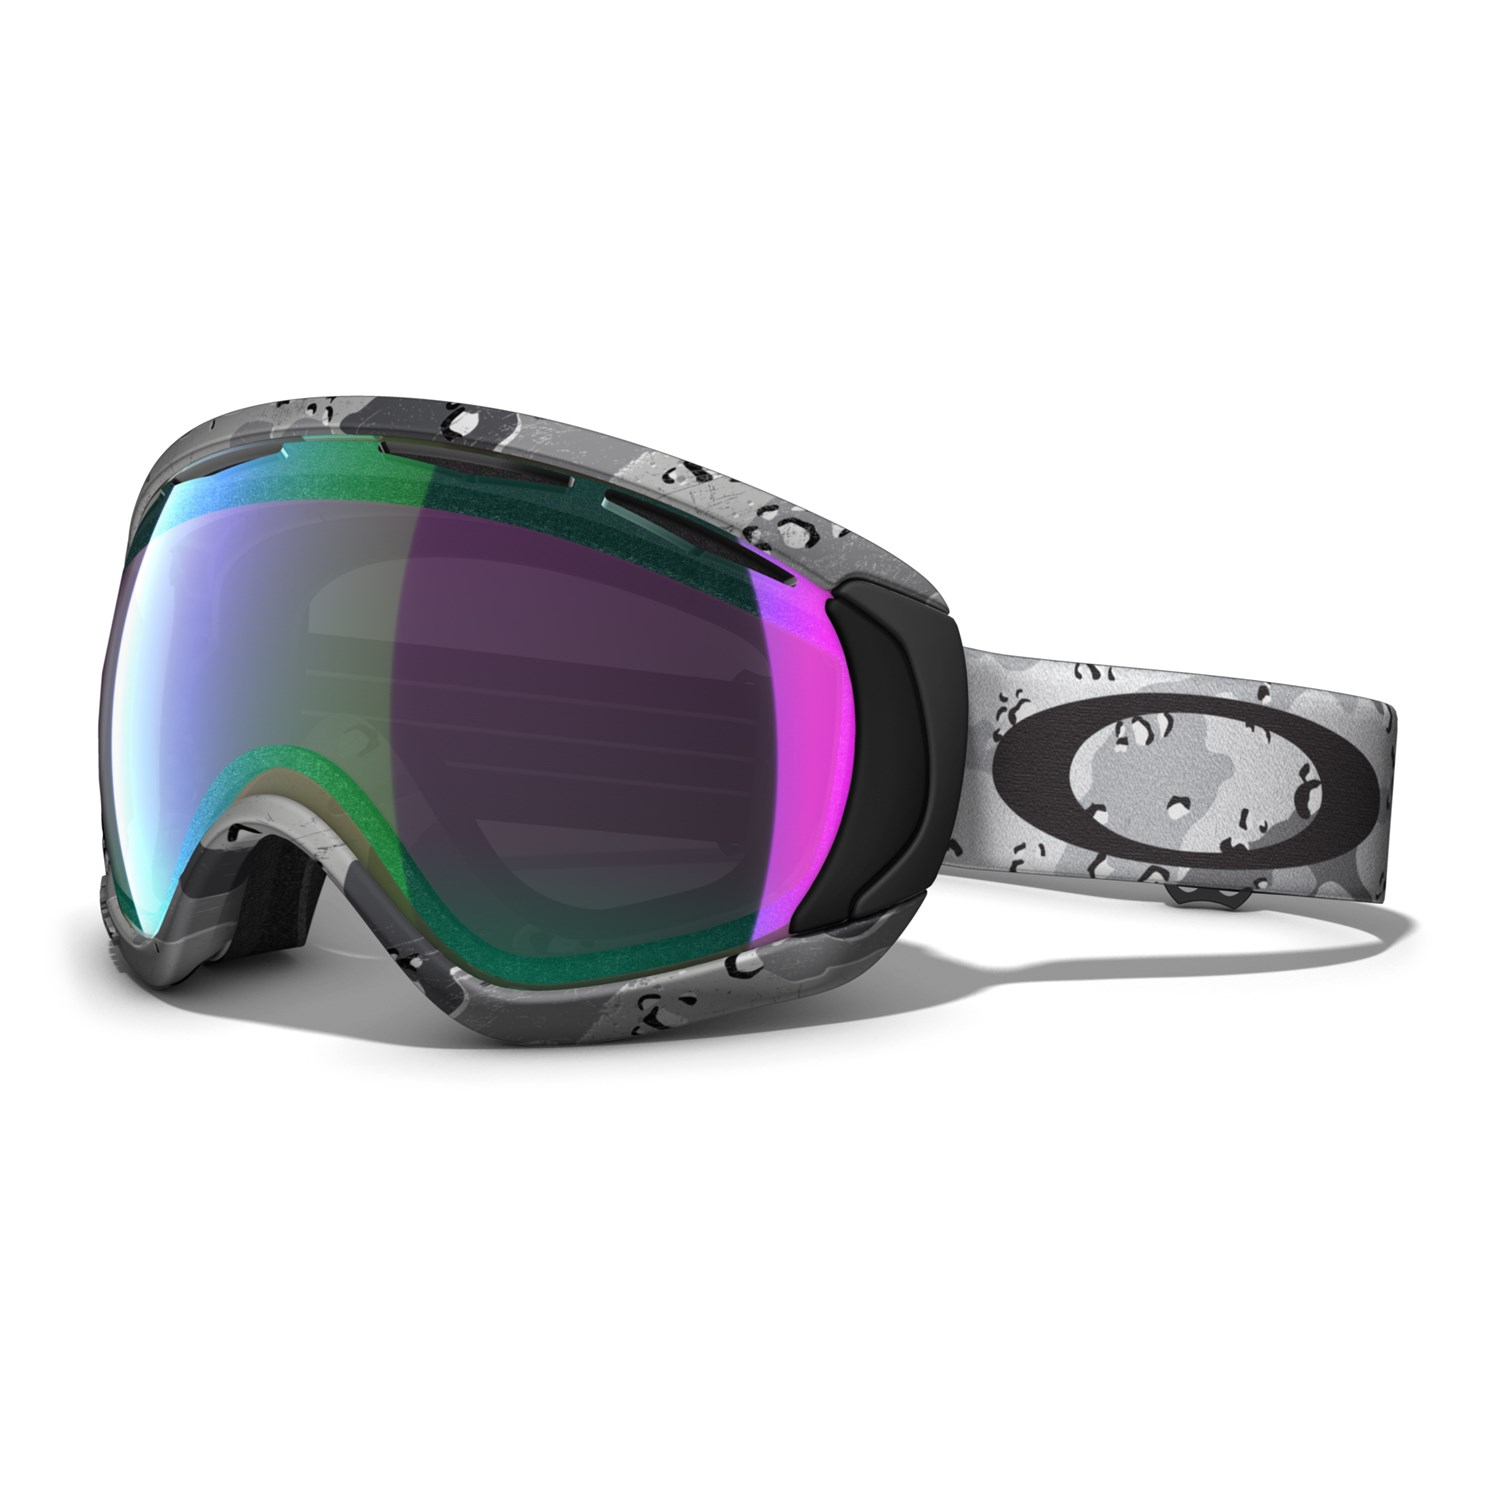 oakley over glasses goggles  Oakley Tanner Hall Signature Canopy Goggles